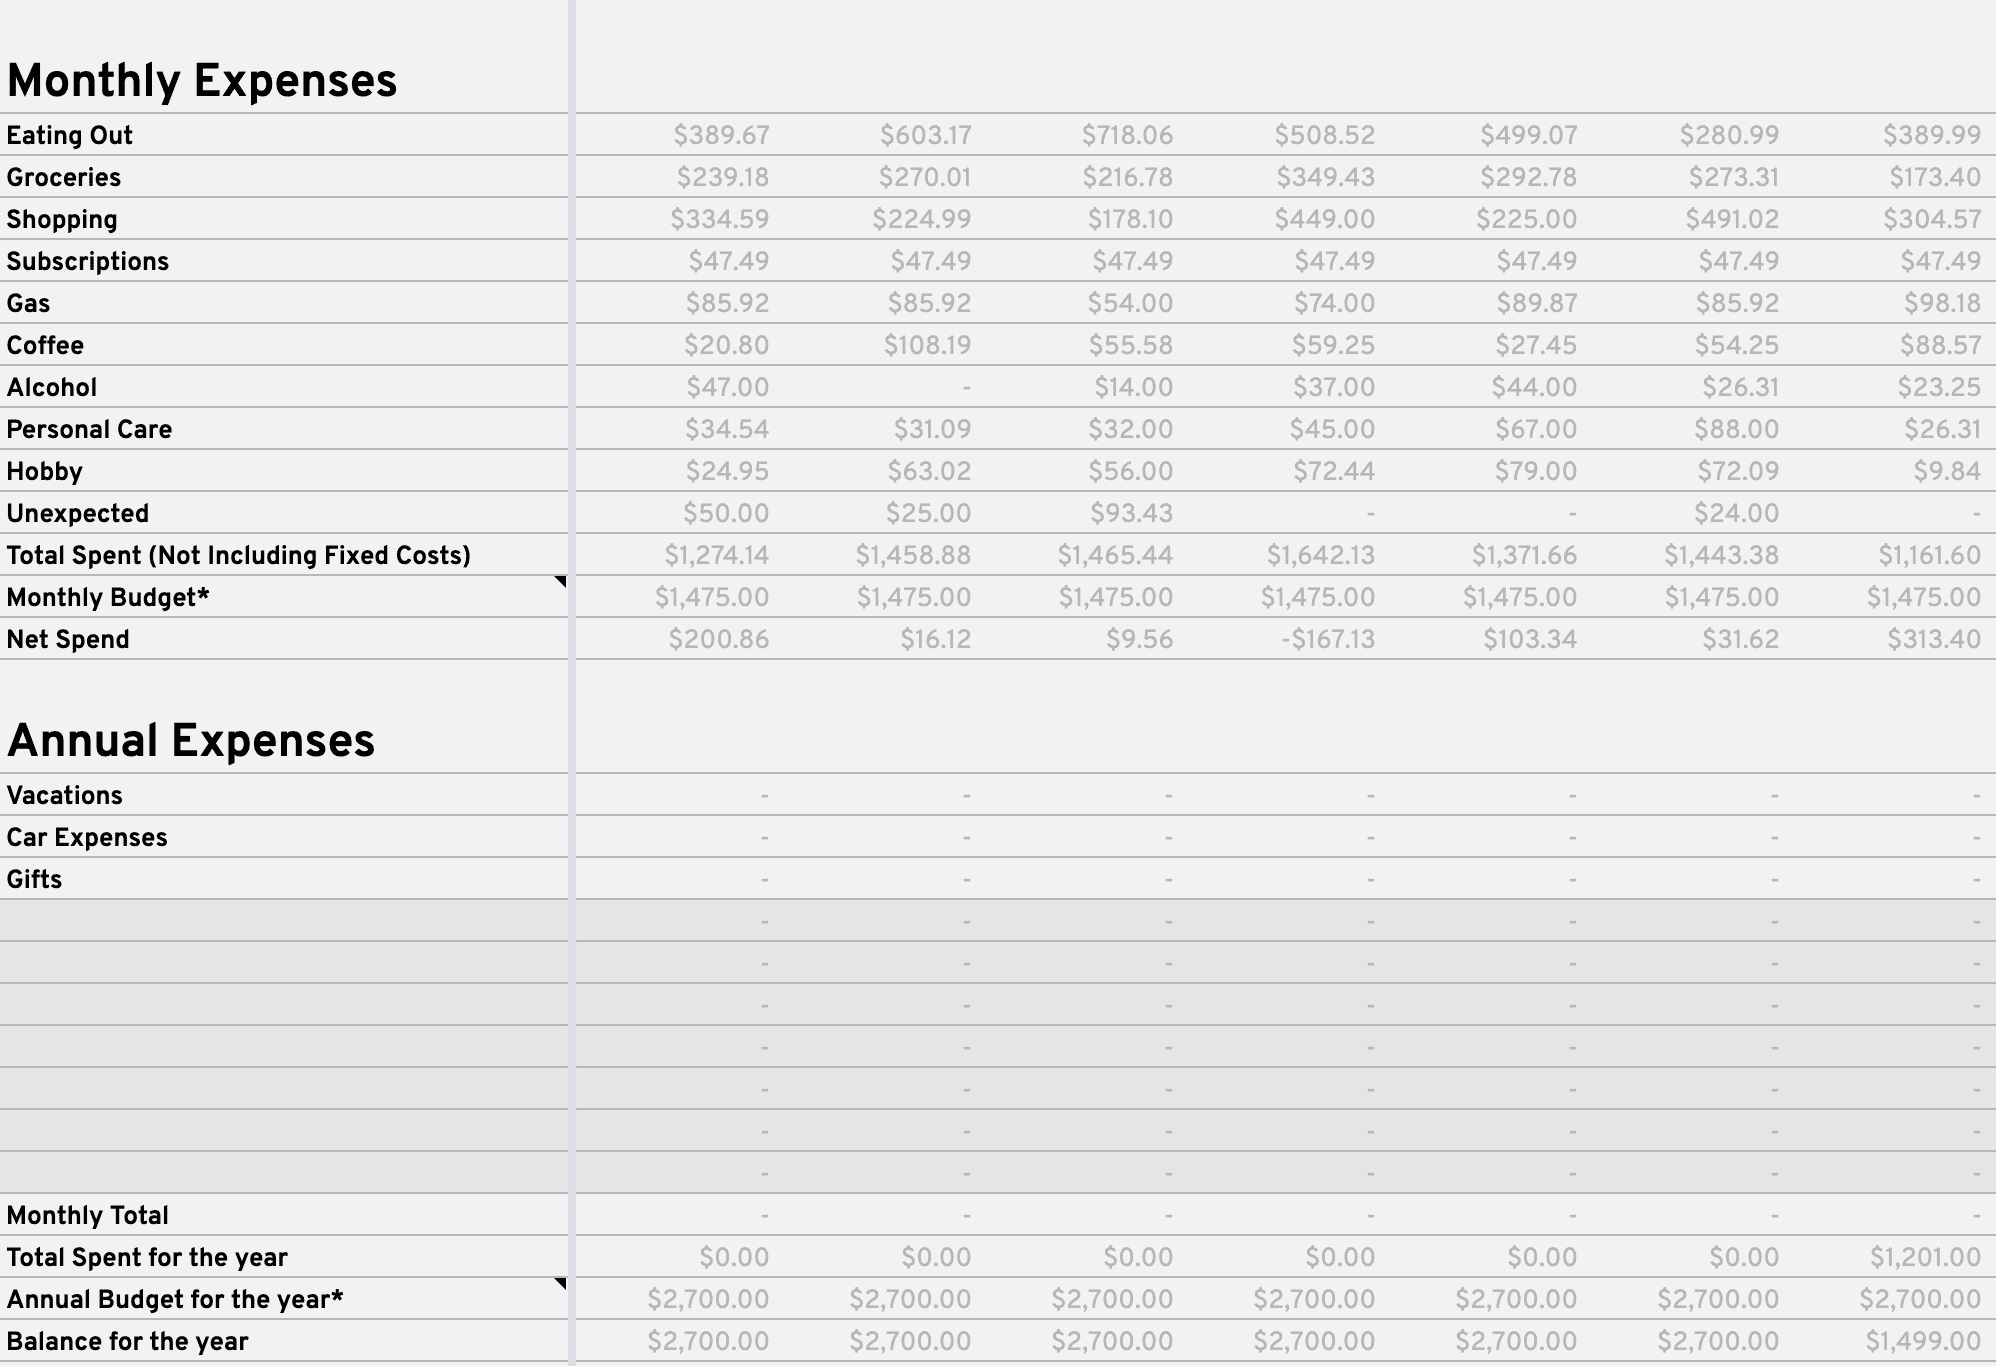 Example of the Monthly and Annual Expenses secions with sample data on the Balance Sheet tab.